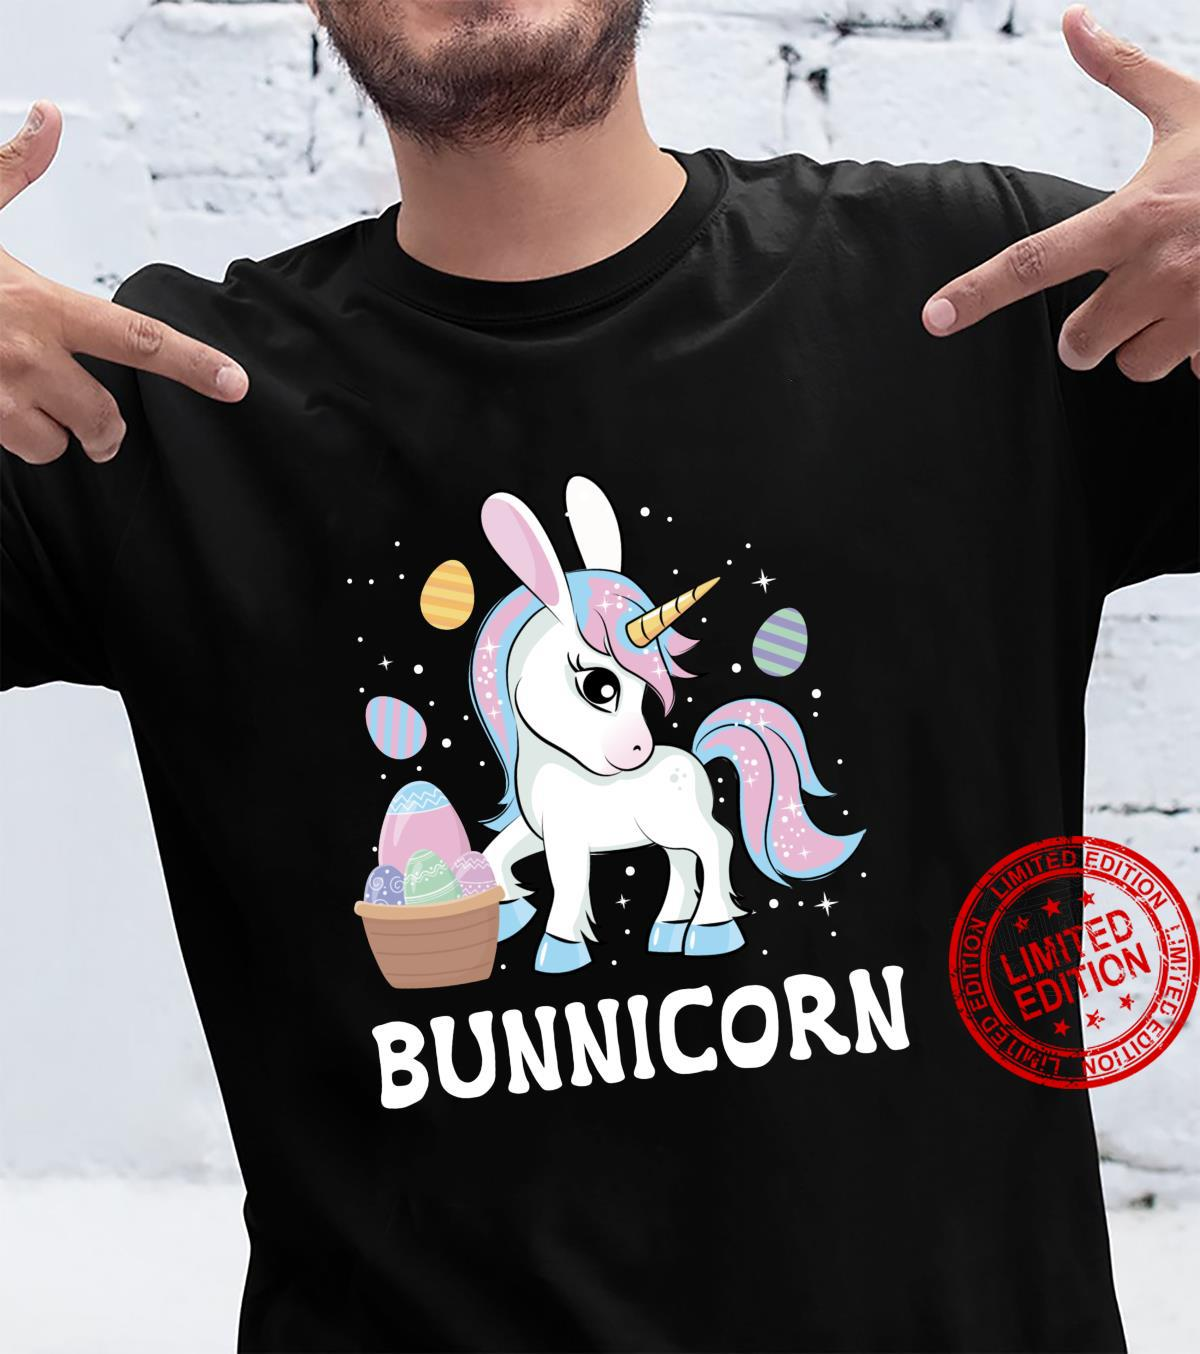 Easter Unicorn Bunnicorn Shirt